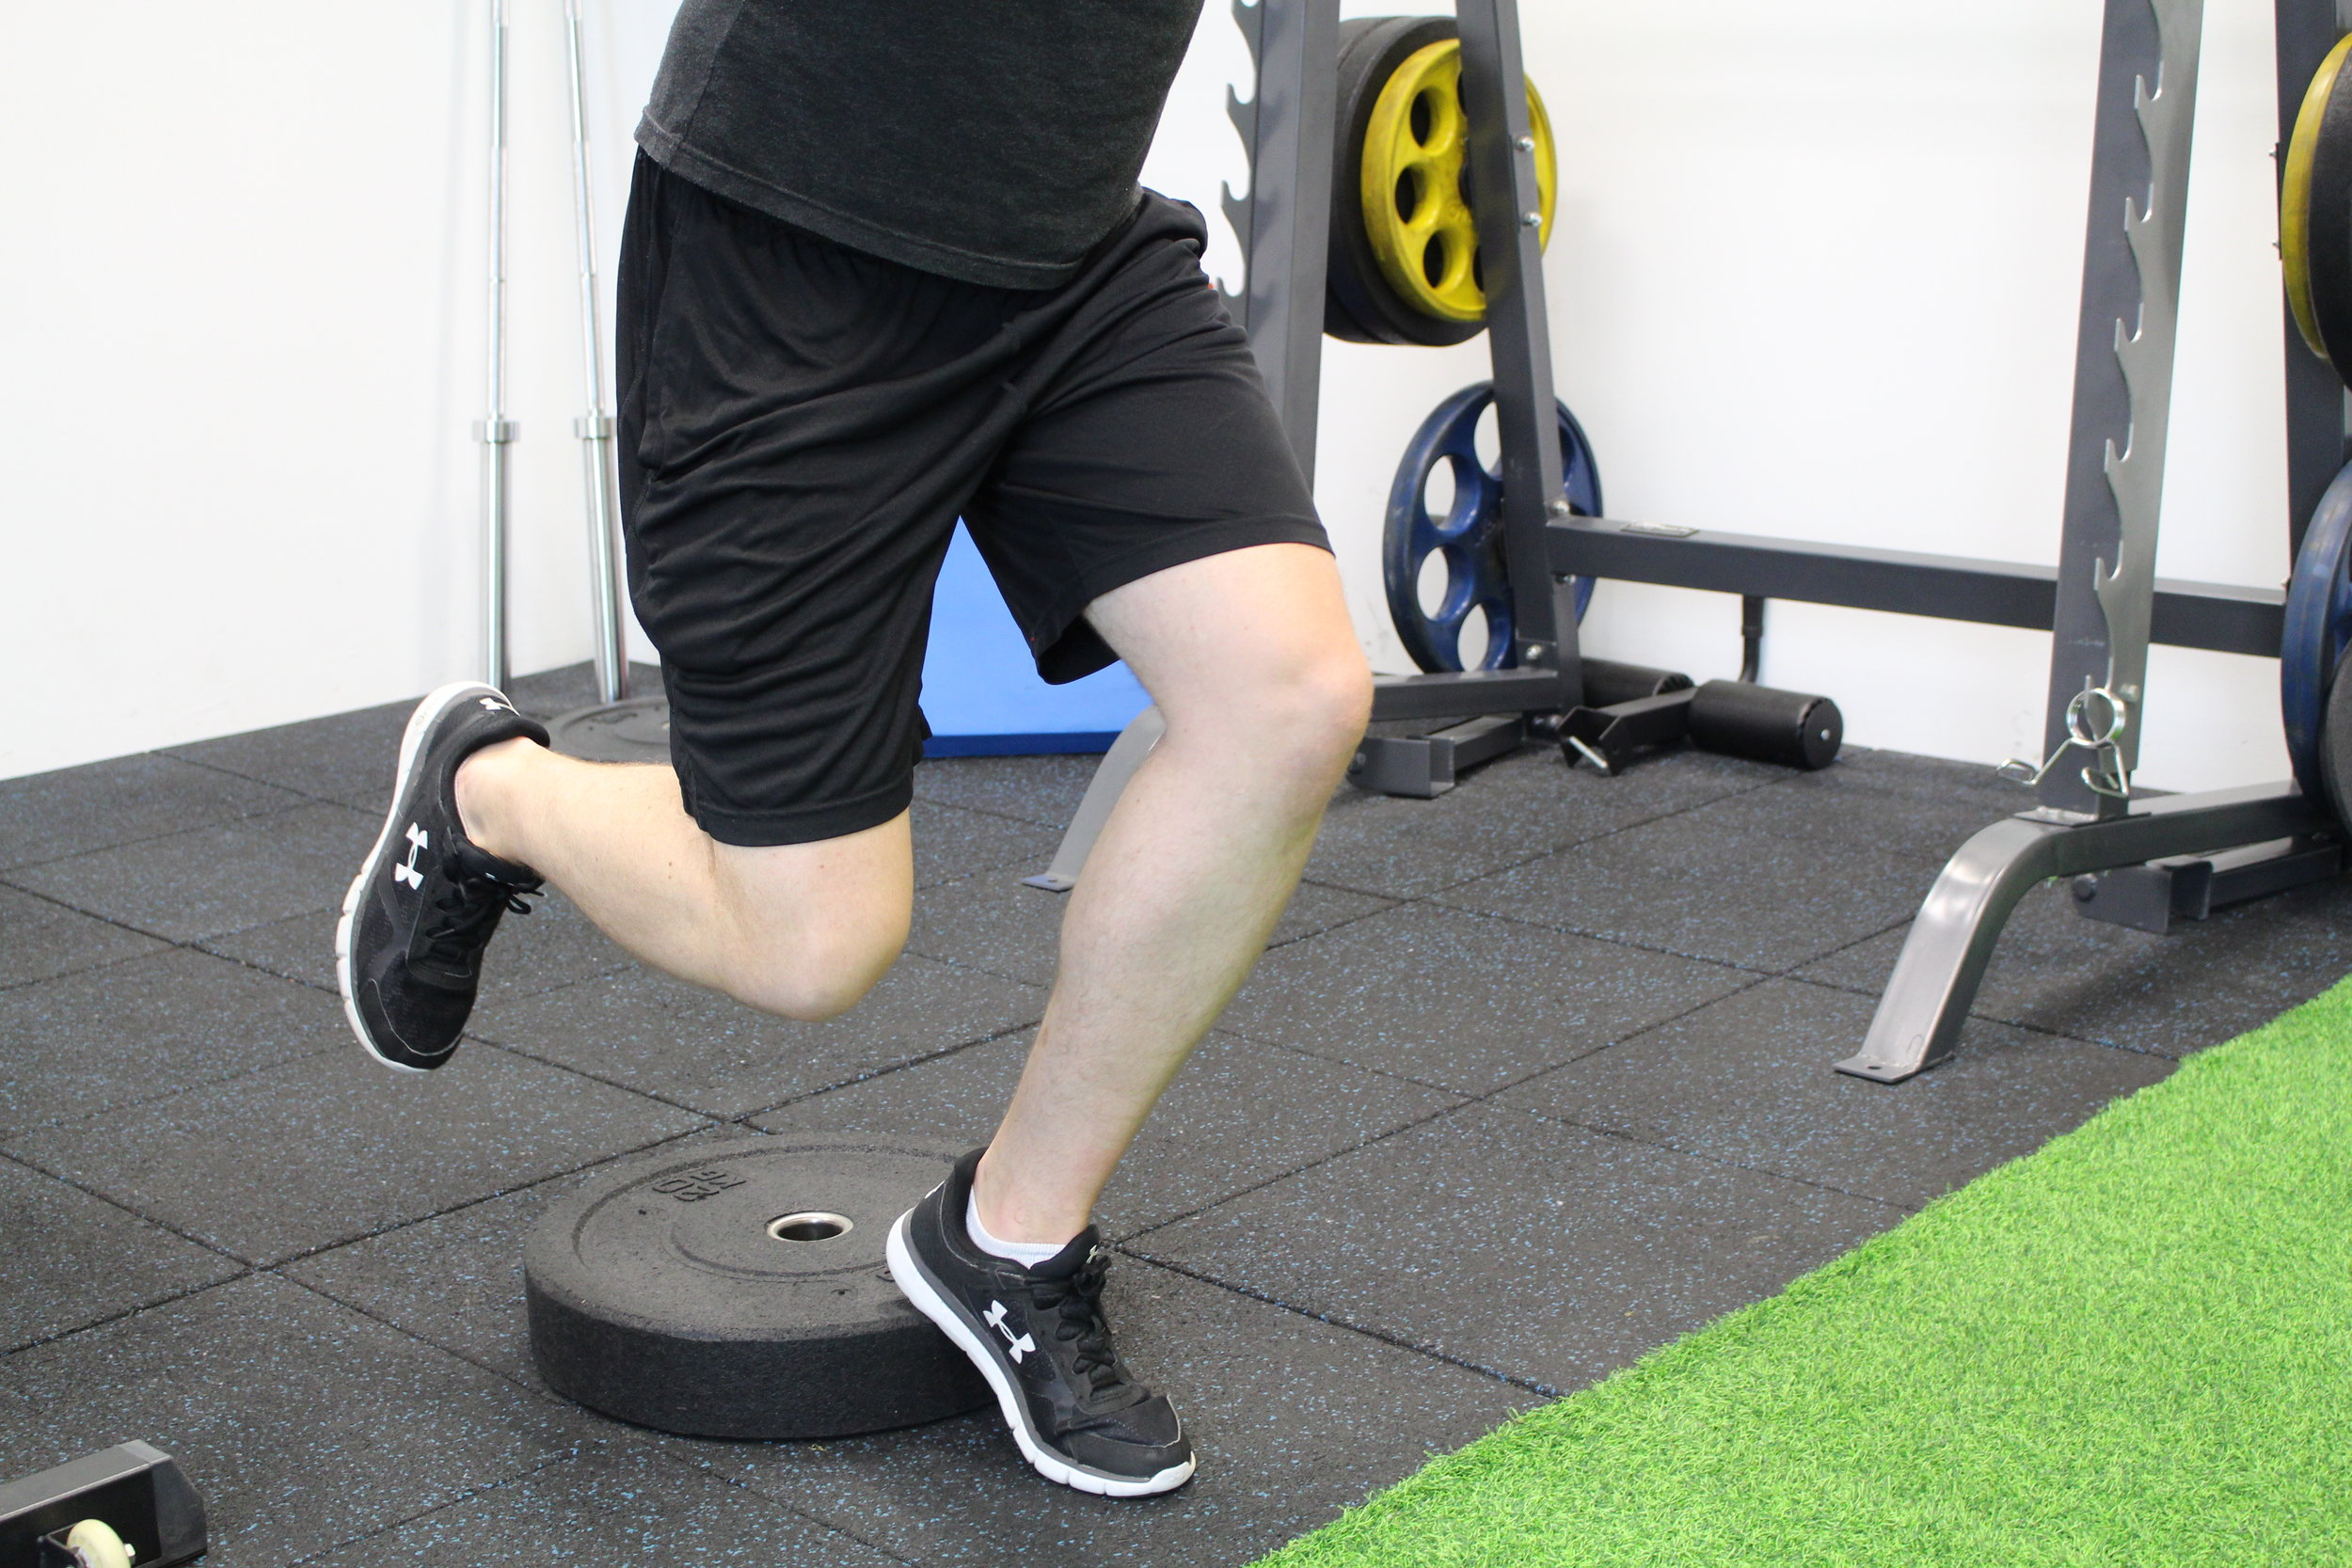 Single leg decline squat to determine Patella Tendonitis